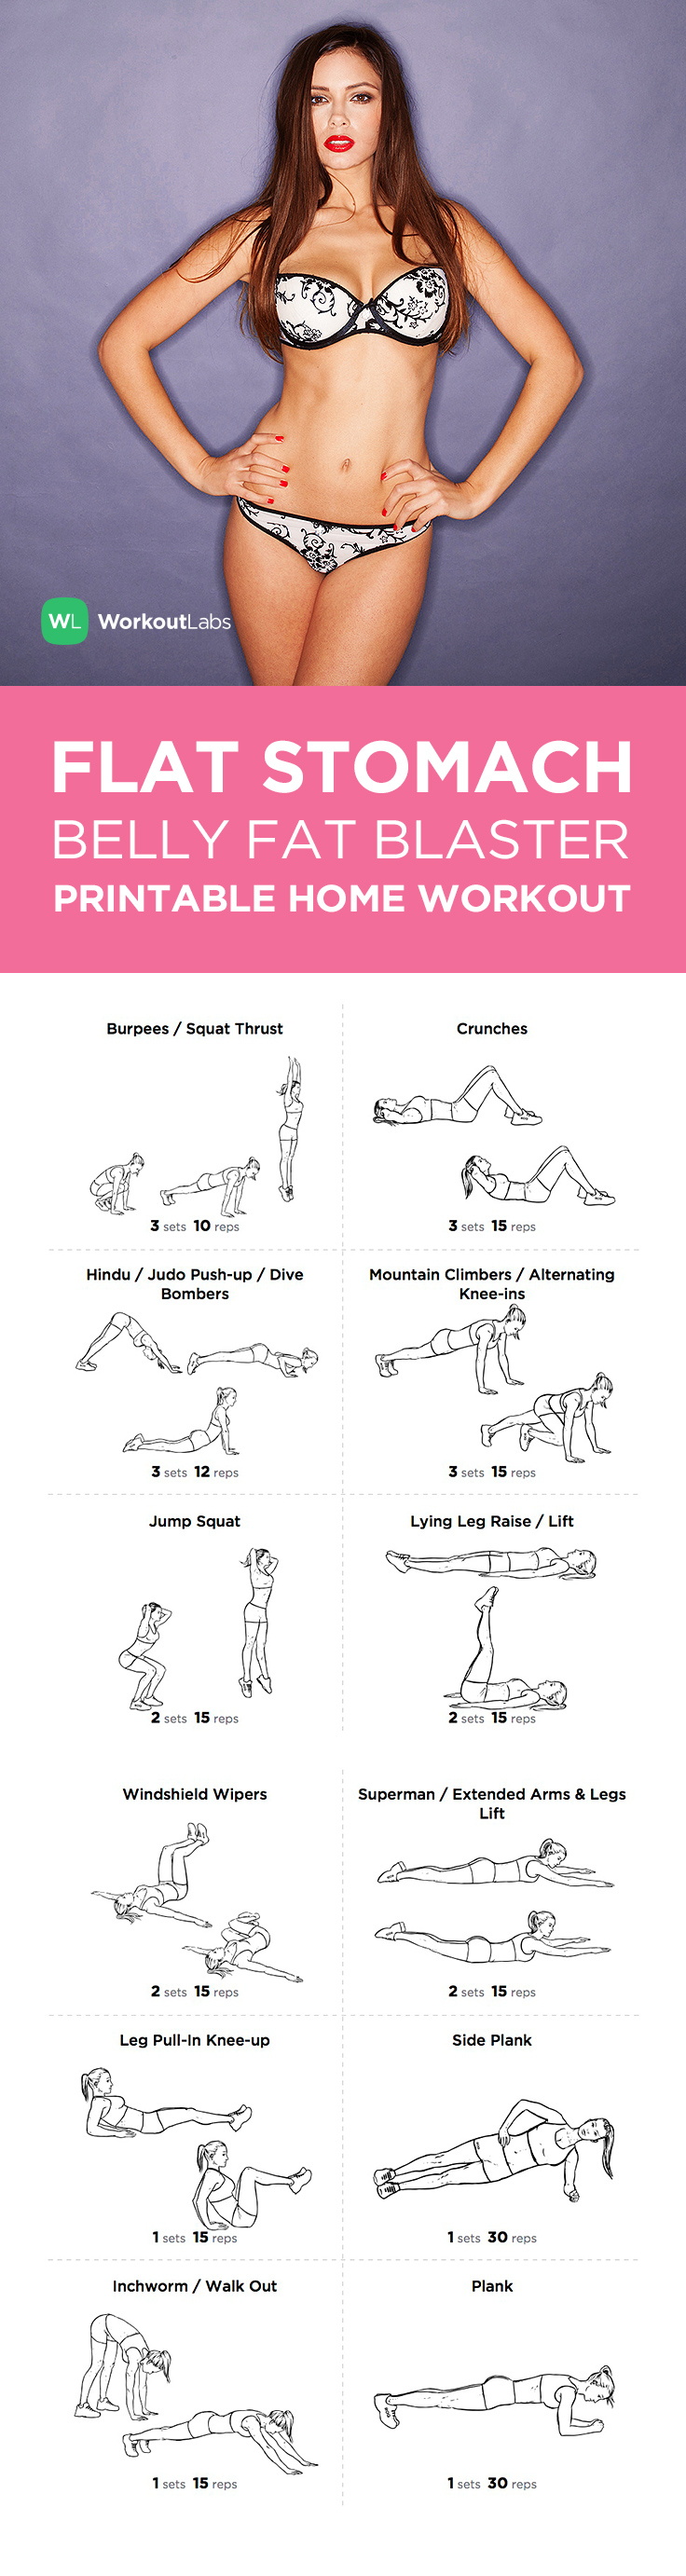 Free Pdf Flat Stomach Belly Fat Blaster At Home Workout For Women Https